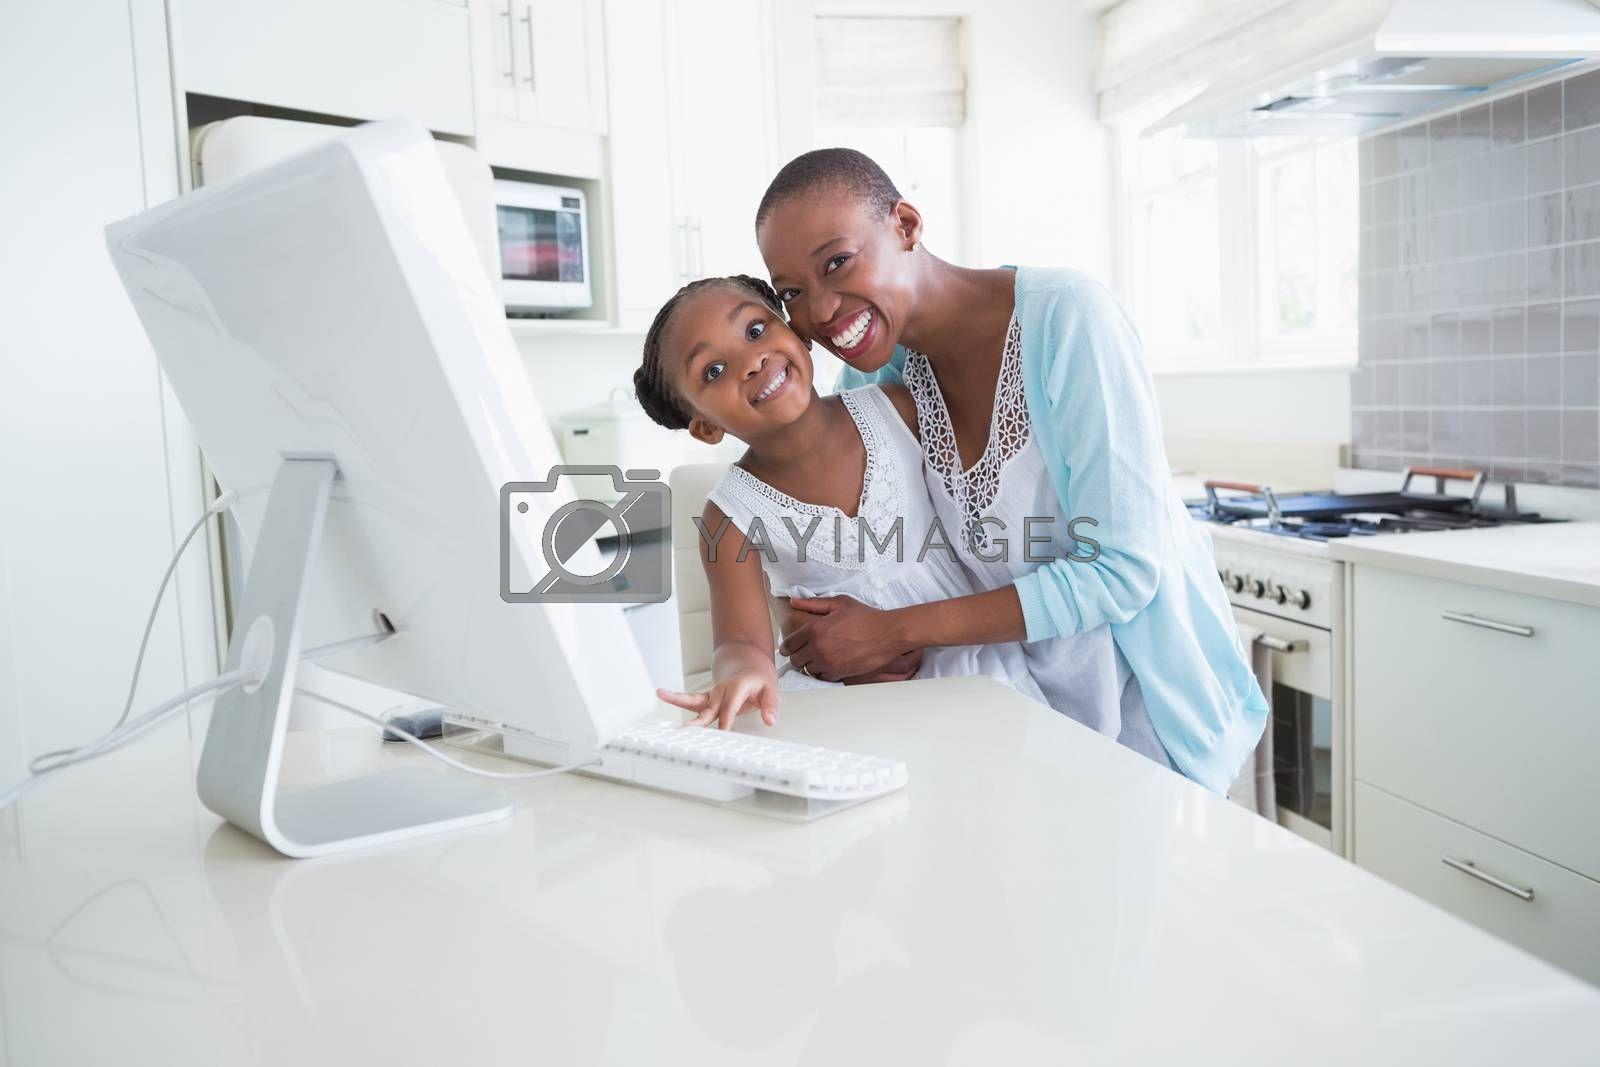 Royalty free image of Happy smiling mother with her daughter using computer  by Wavebreakmedia